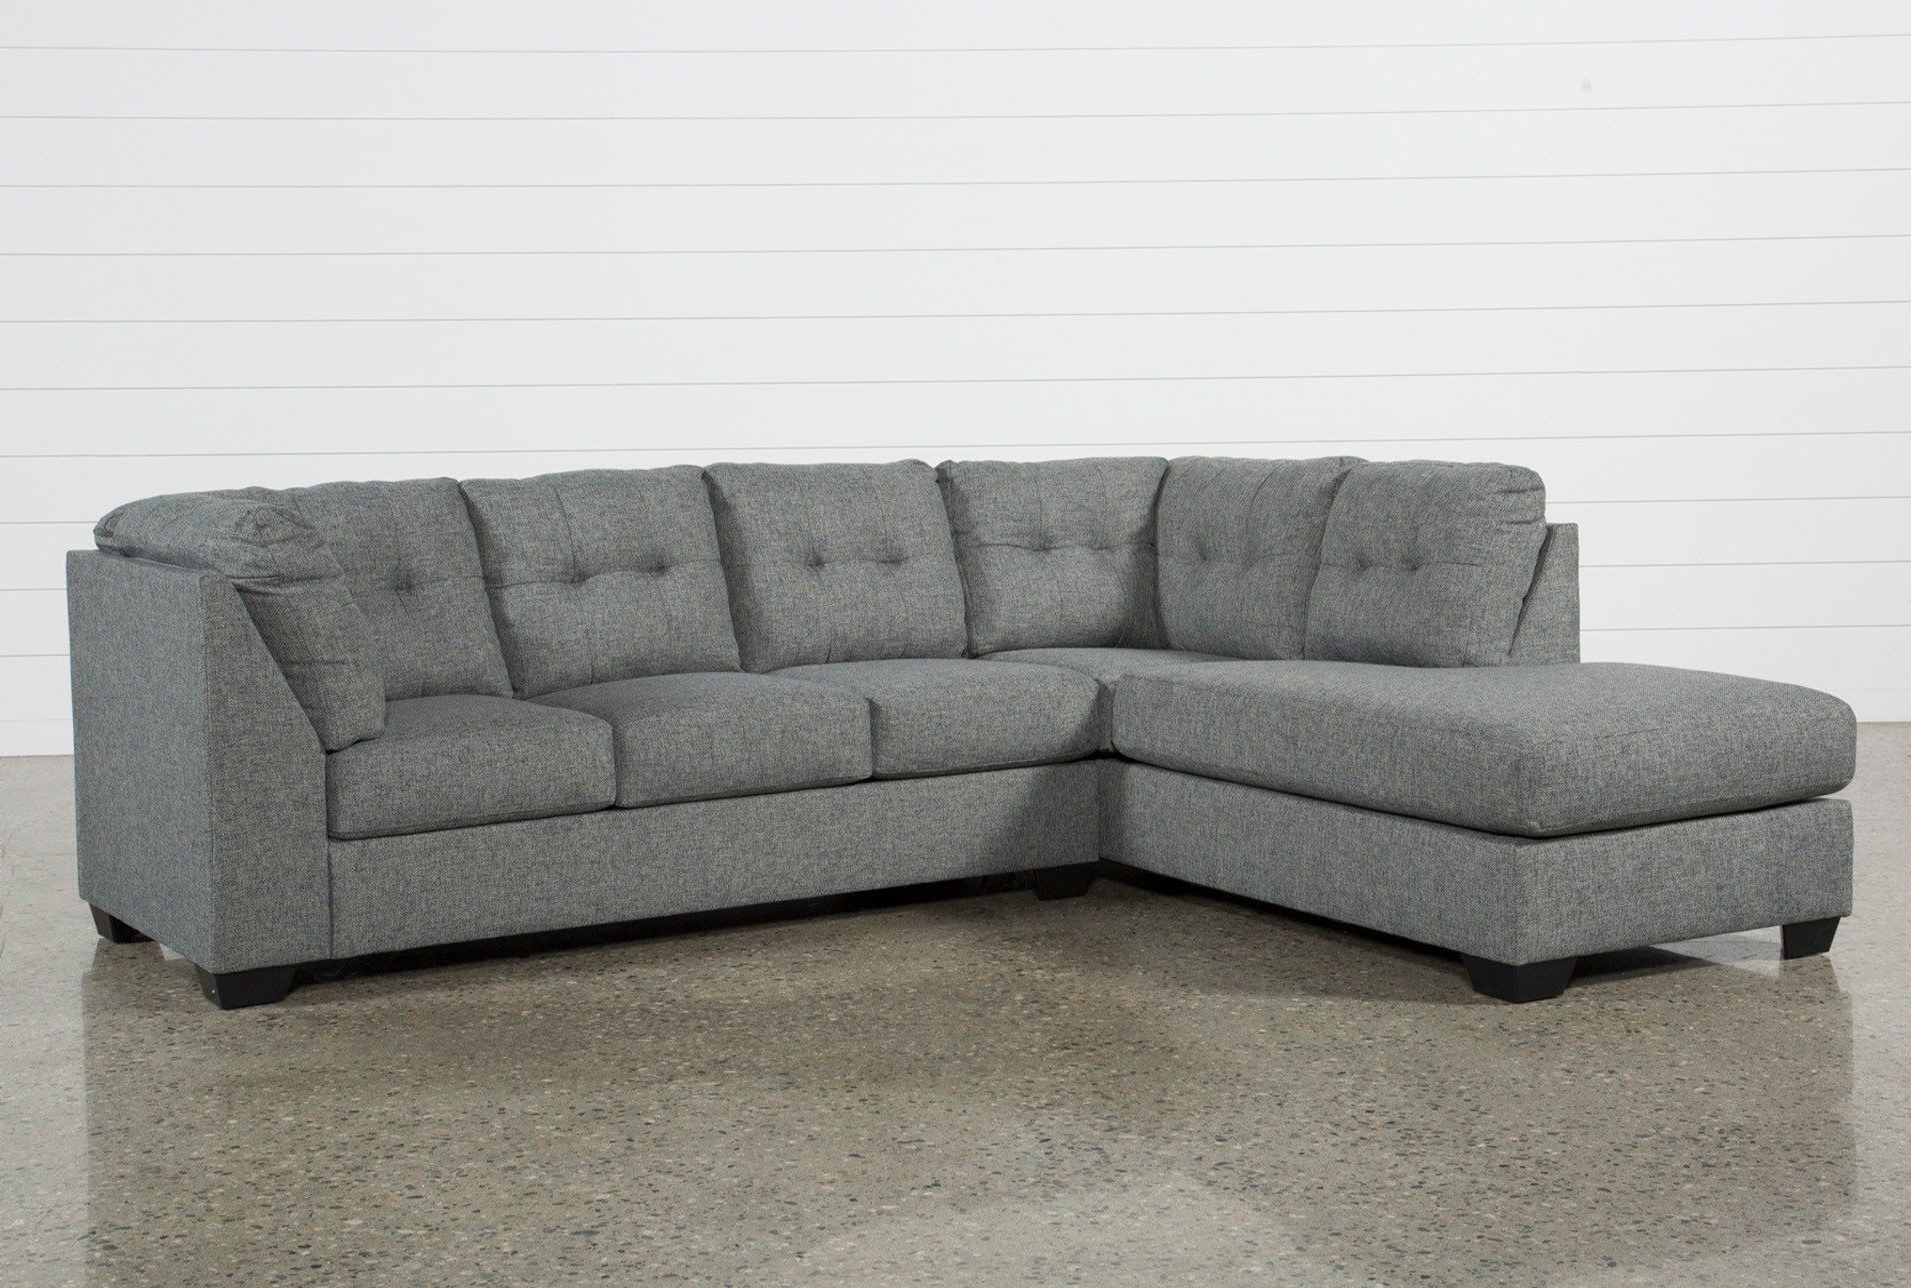 Kerri 2 Piece Sectionals With Raf Chaise In Most Recent Cosmos Grey 2 Piece Sectional W/laf Chaise (View 15 of 20)